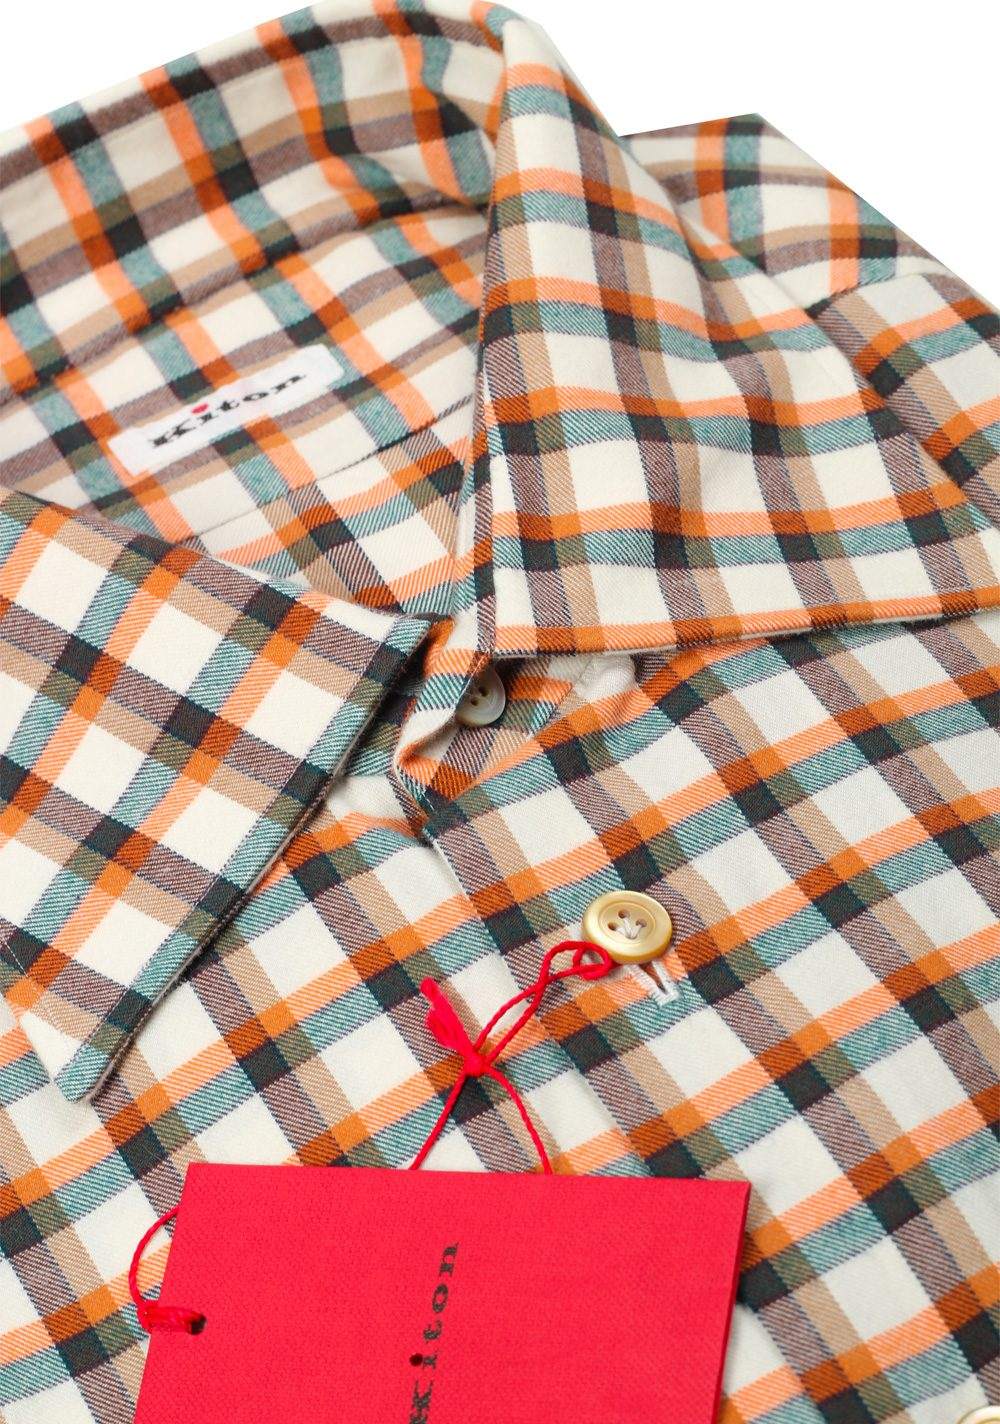 Kiton Checked Flannel Shirt 43 / 17 U.S. | Costume Limité